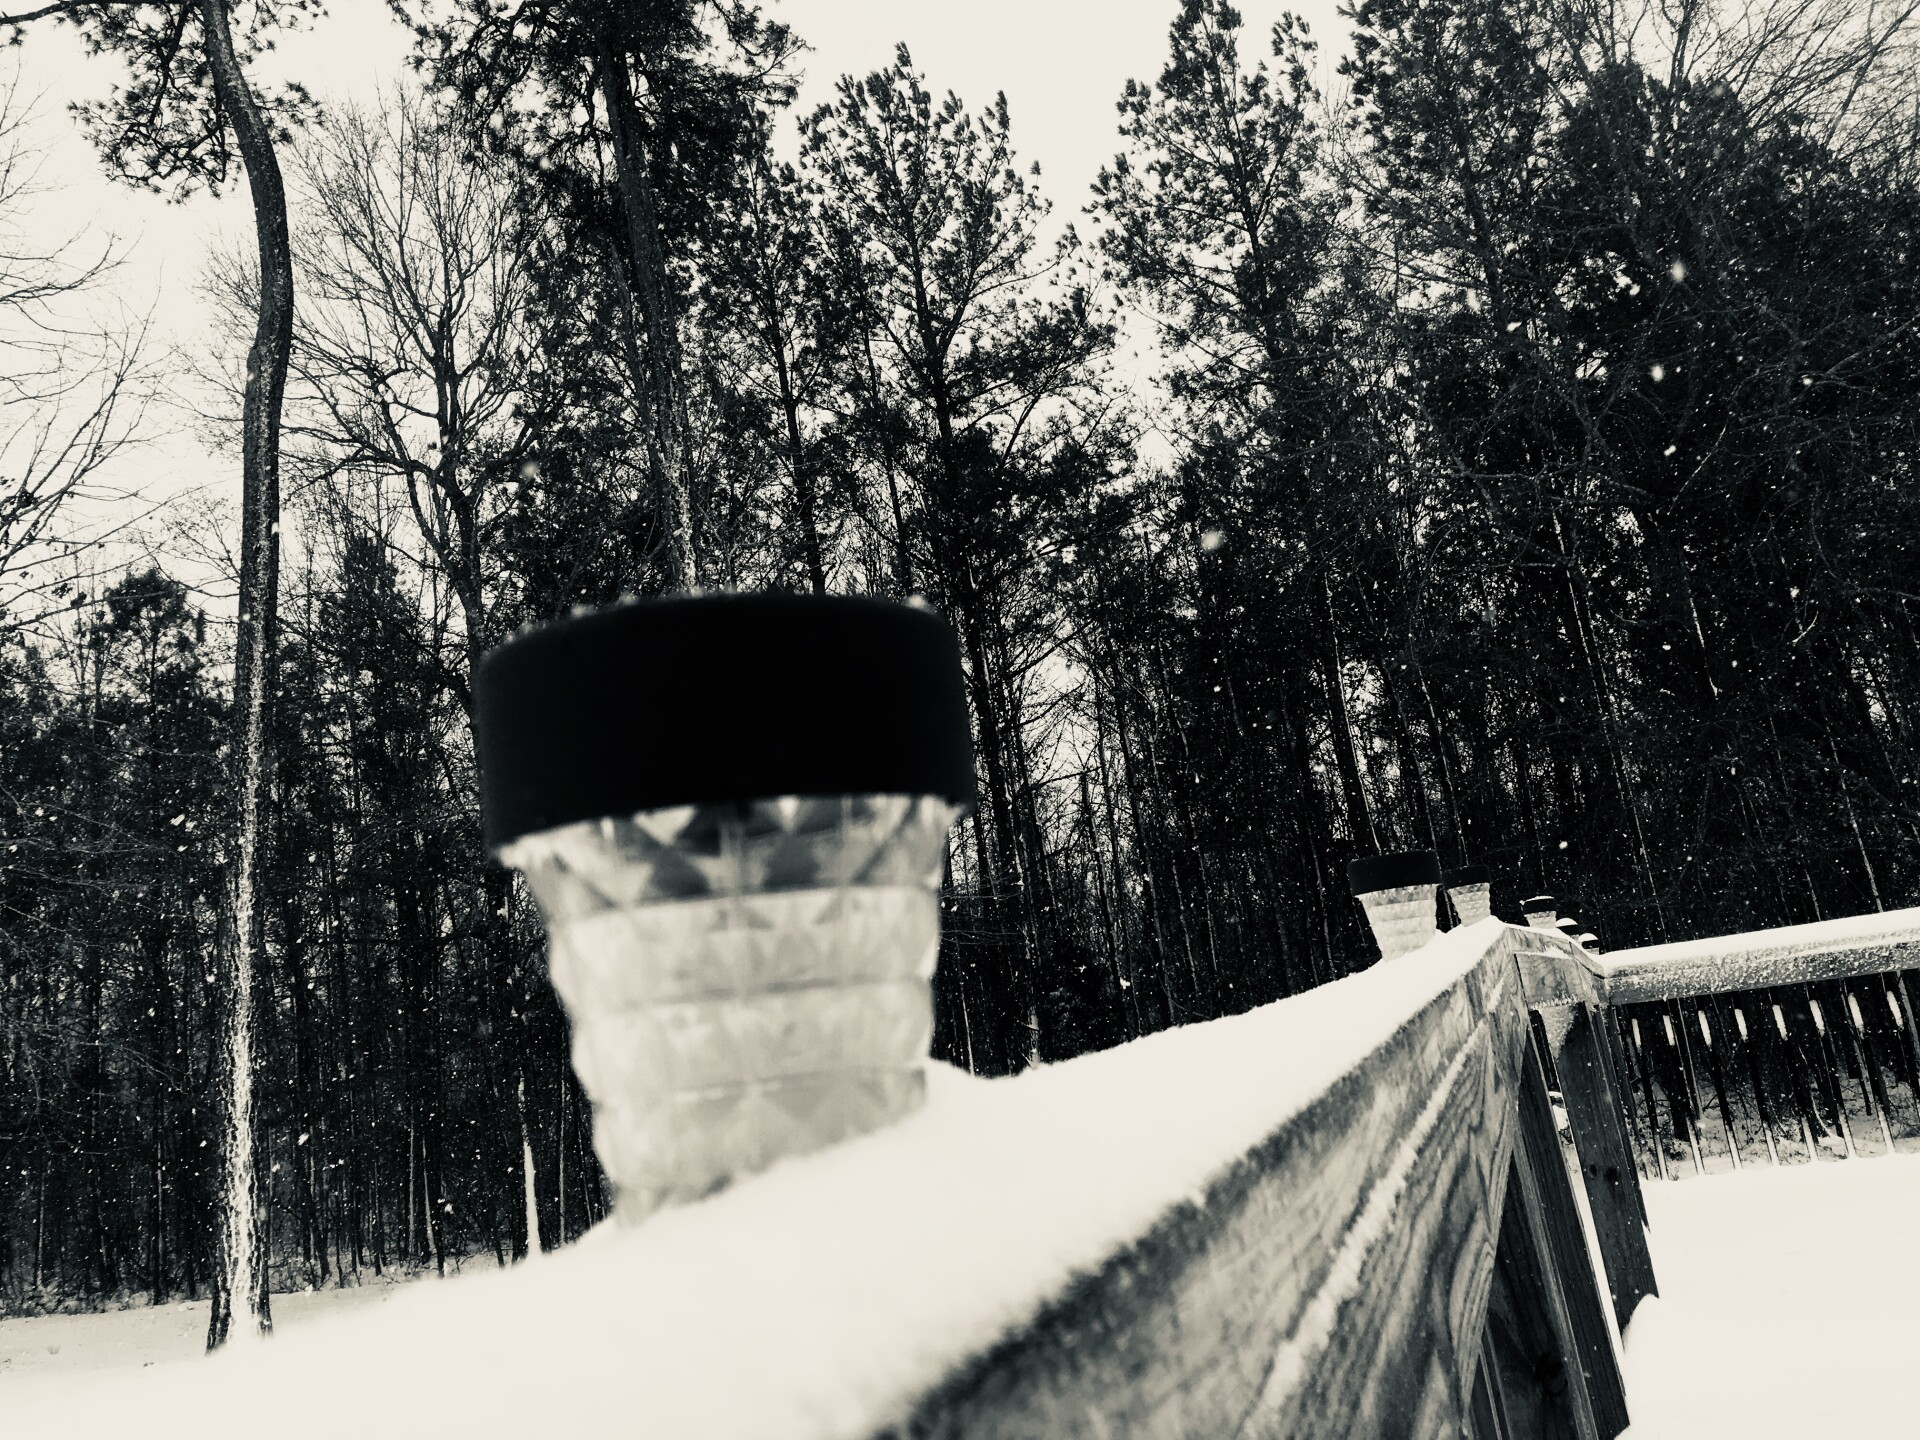 Photos: Share your photos from the second local snow of 2018